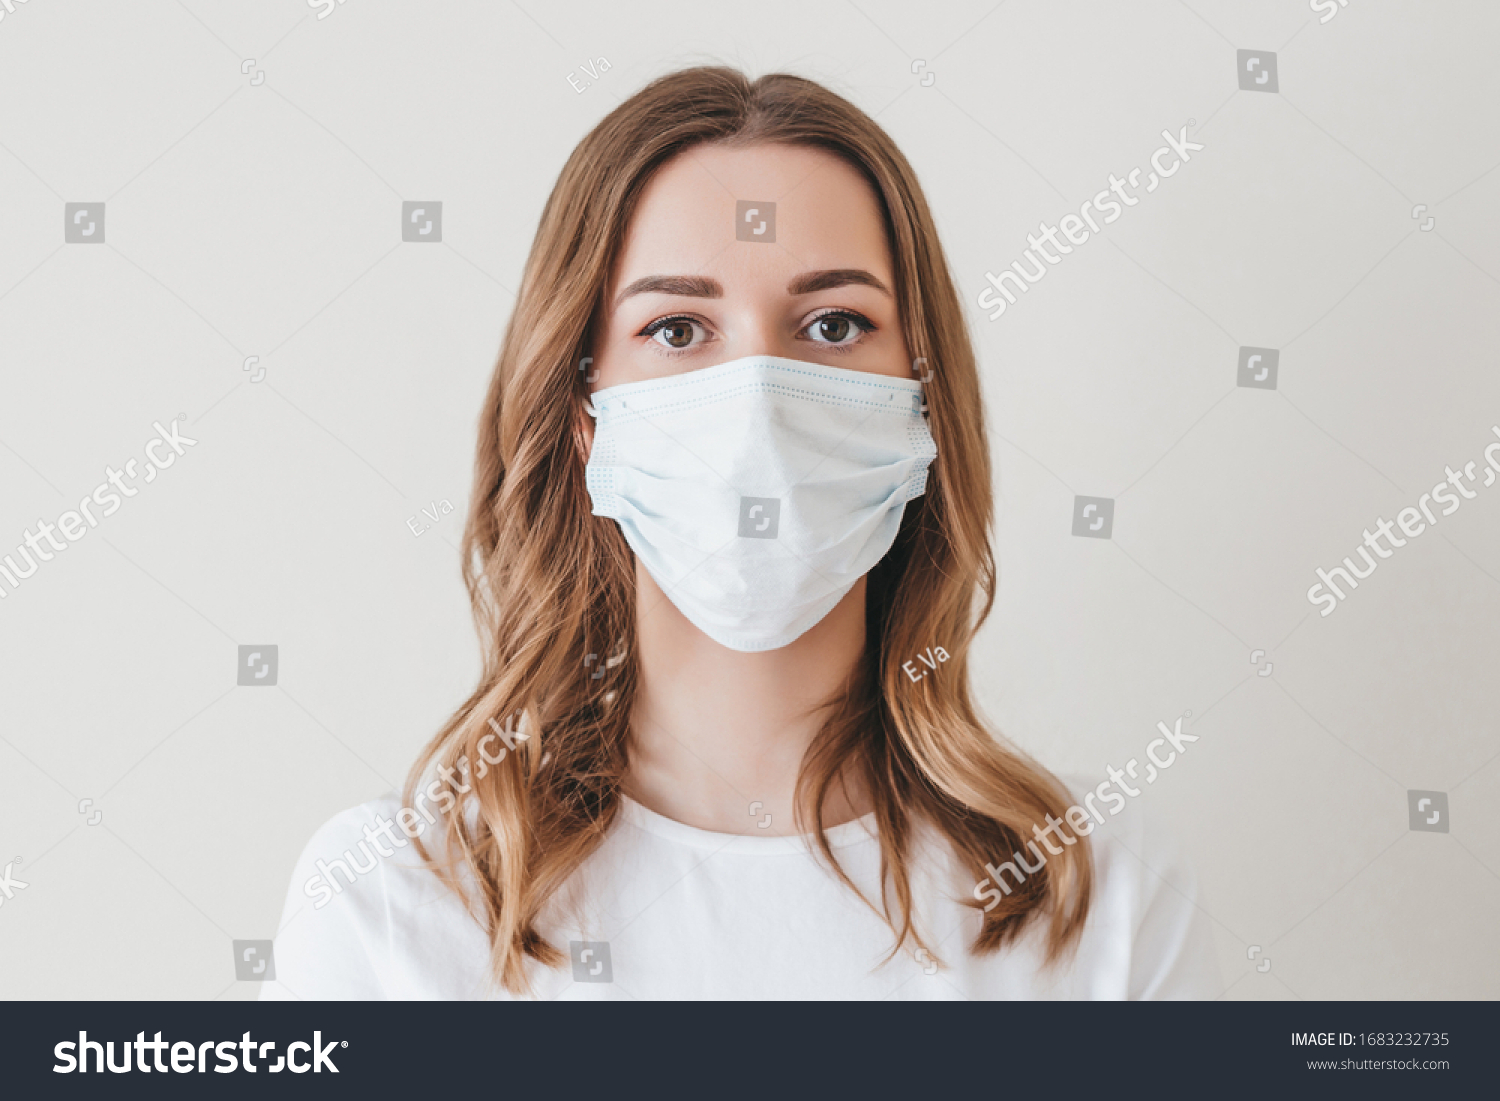 Portrait of a young girl in a medical mask isolated on a white wall background. Young woman patient, copy space #1683232735